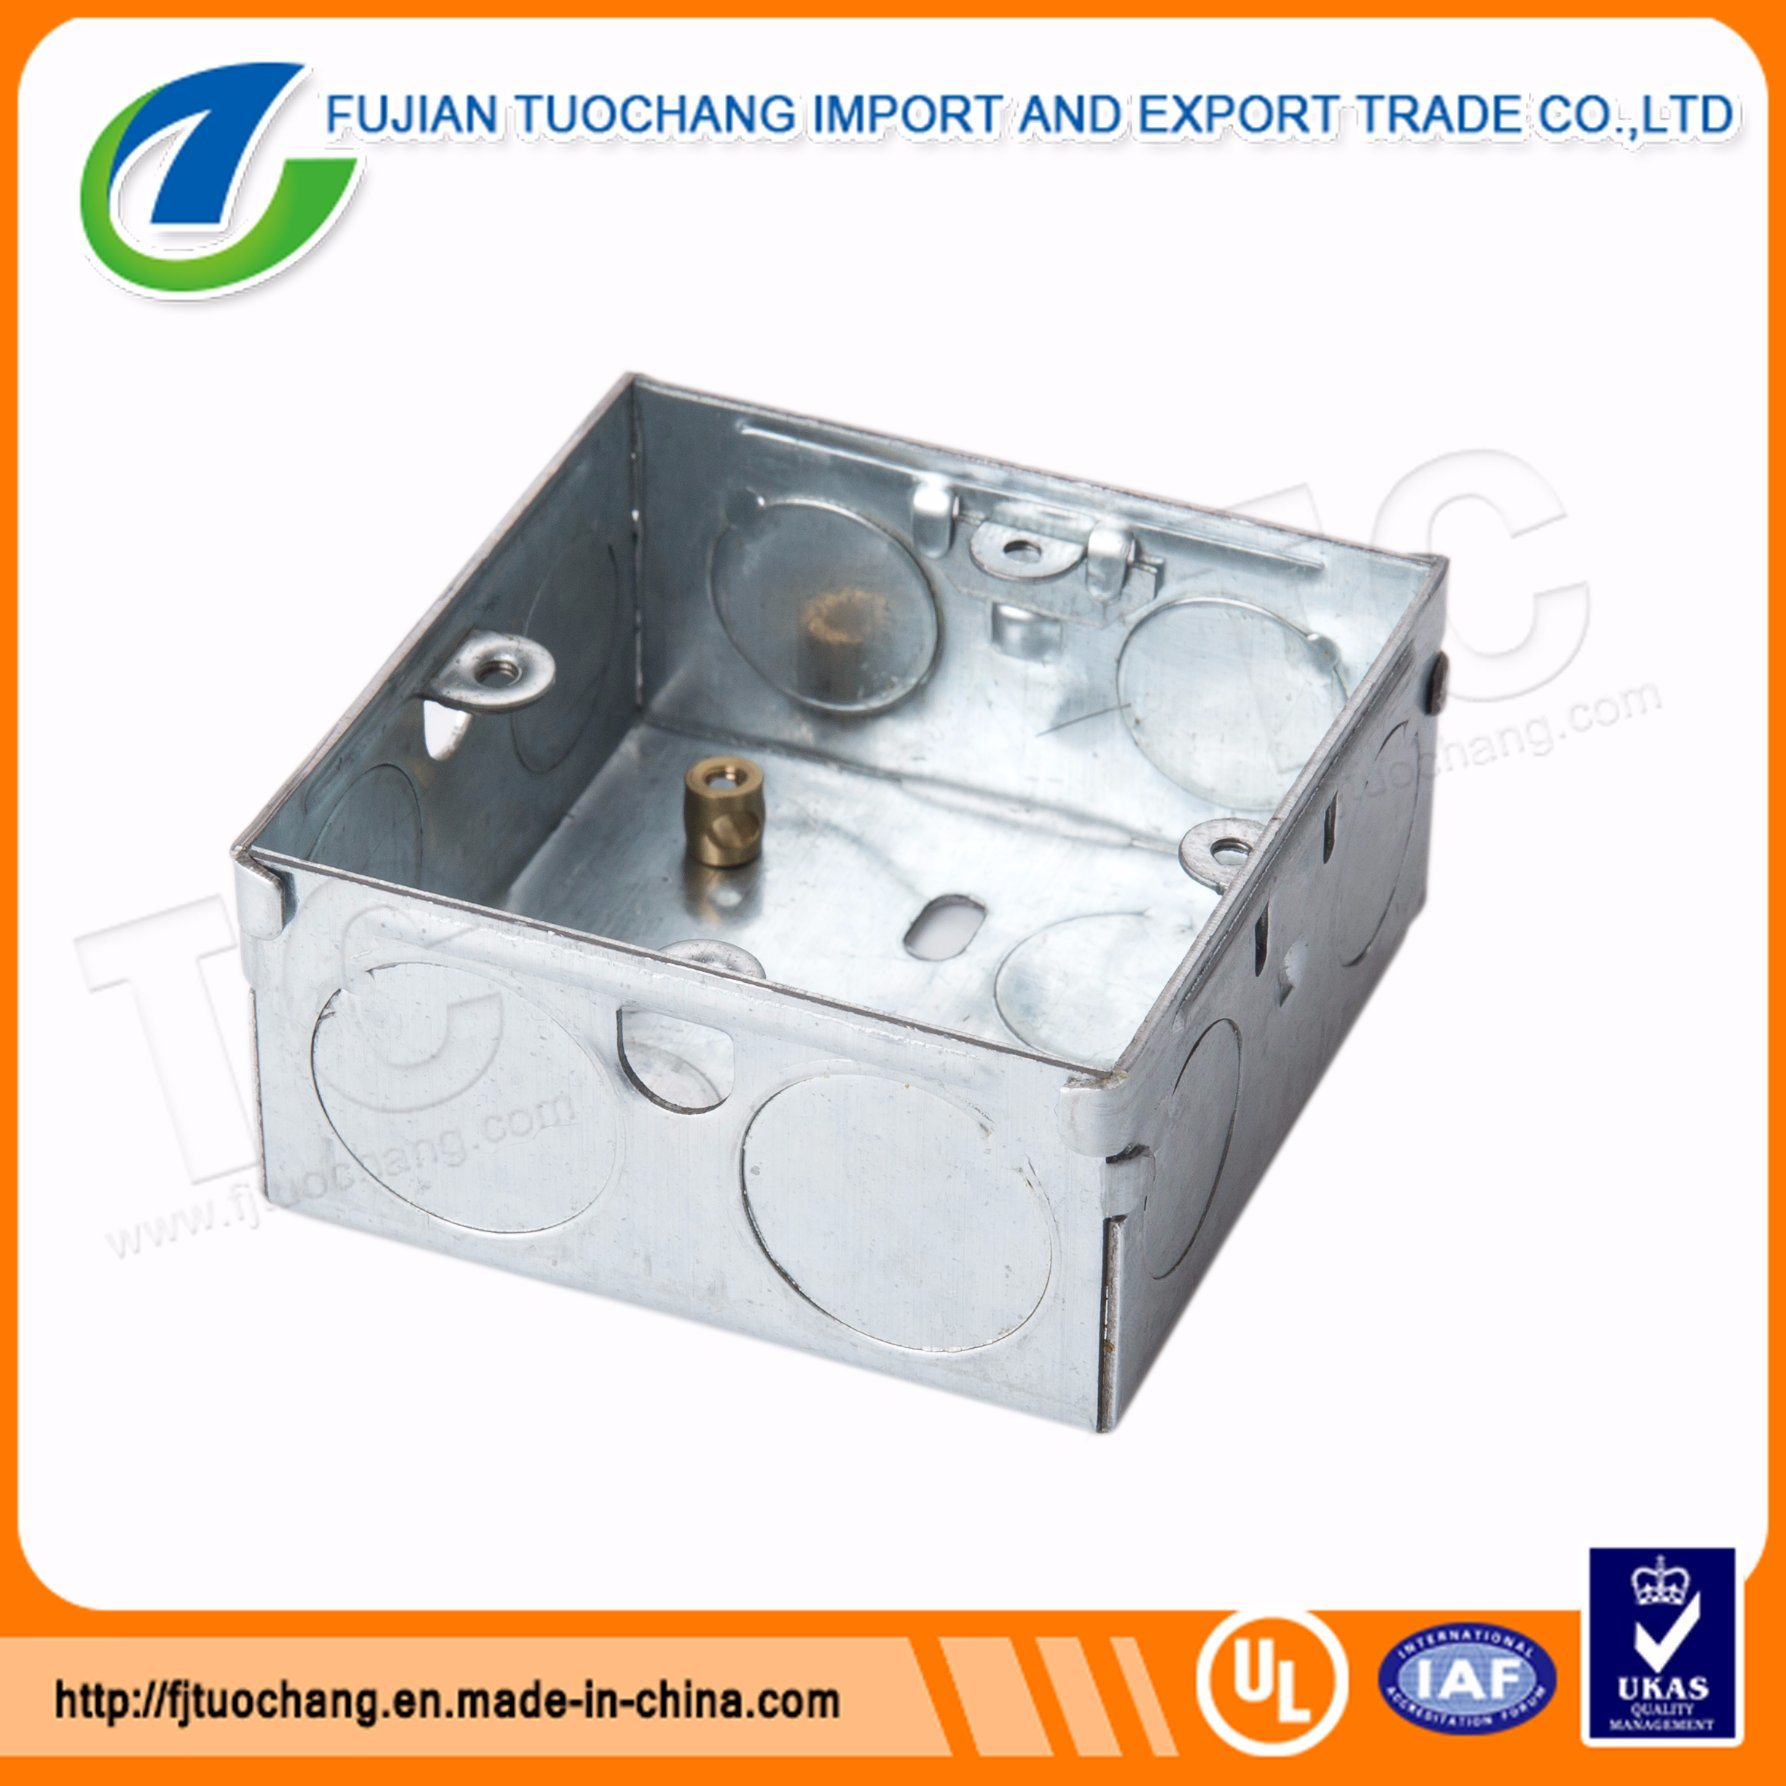 Peachy China Galvanized Steel 3X3 Electric Conduit Box China Conduit Box Wiring Cloud Staixuggs Outletorg